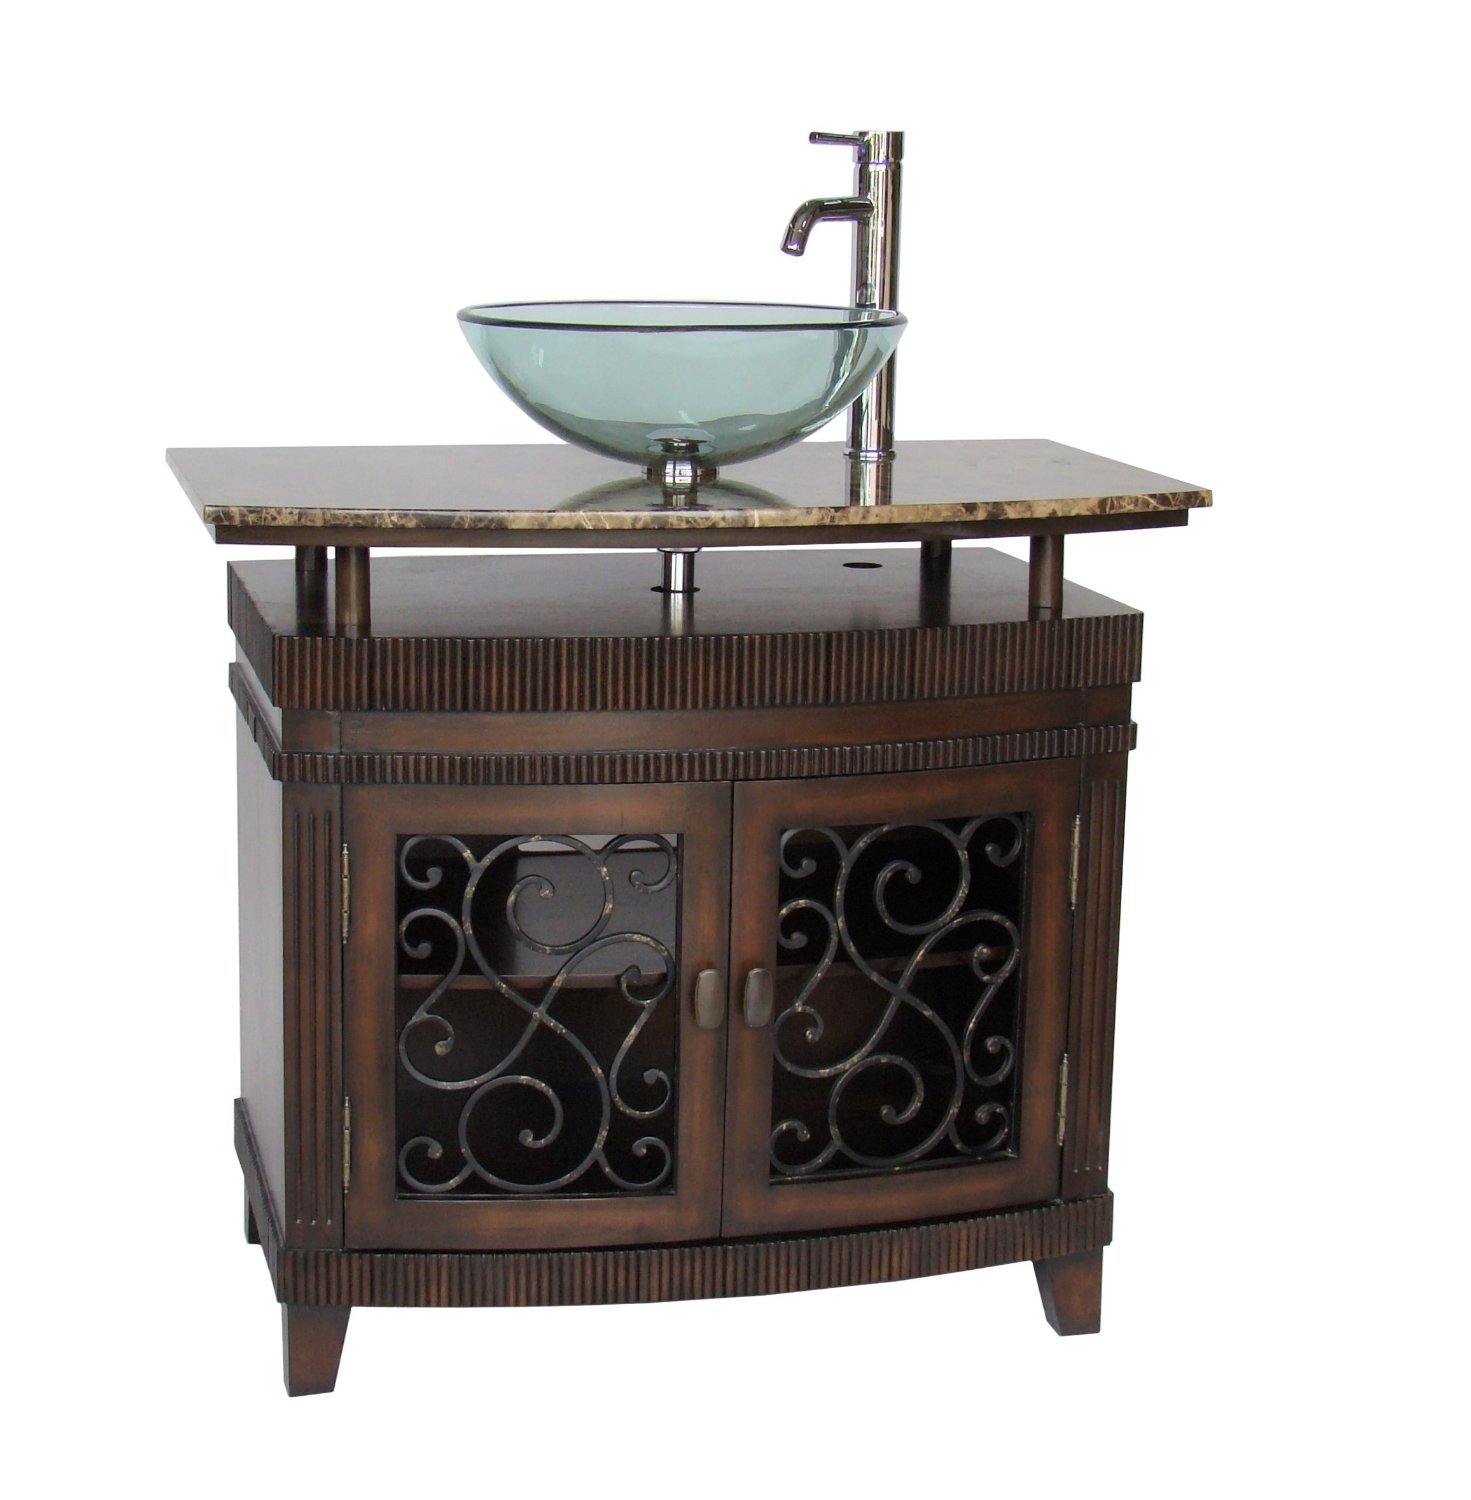 Merveilleux Adelina 36 Inch Vessel Sink Bathroom Vanity Mahogany Finish ...